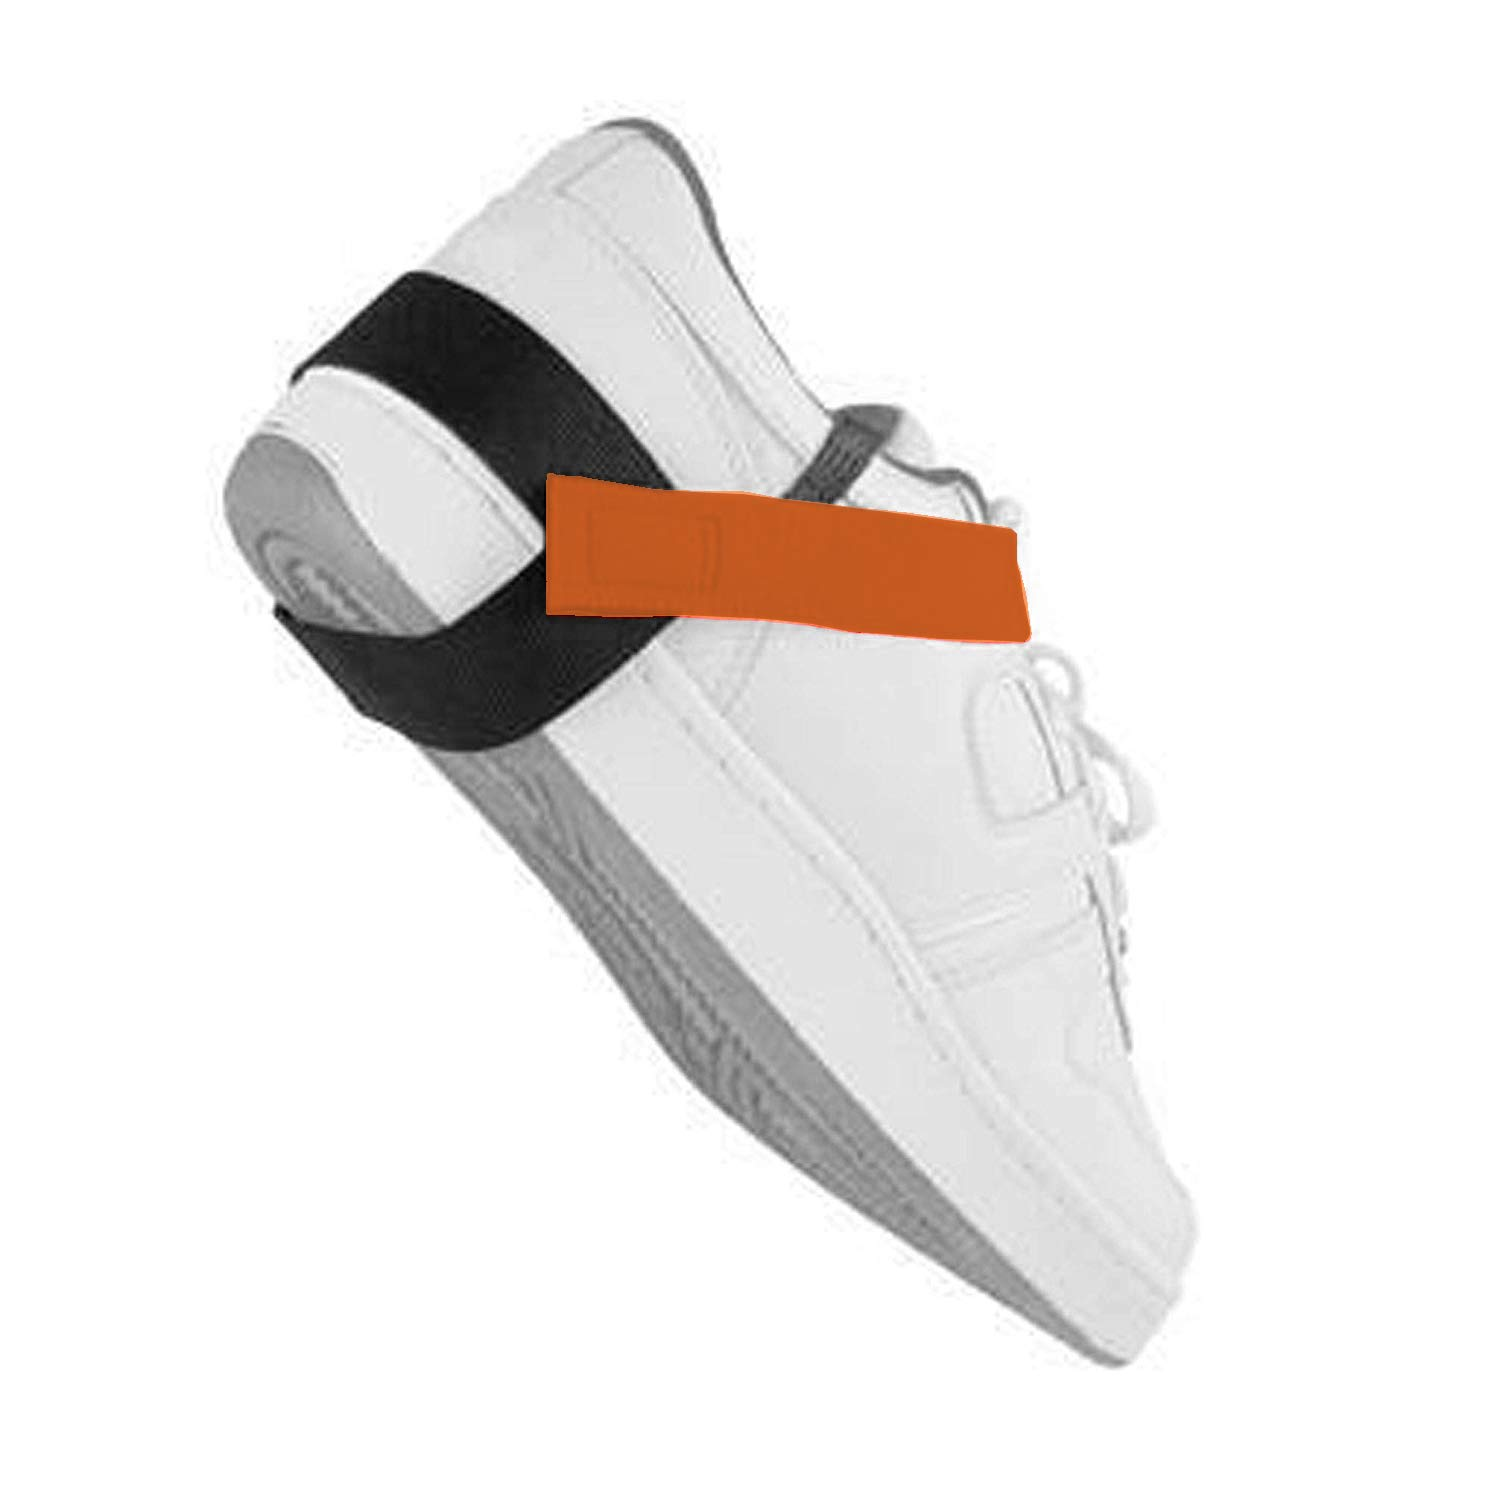 Static Care ESD Adjustable One Size Fits All Anti Static Heel Grounder Straps Single Piece Perfect for Grounding and Protecting Electronics Against Electric Shock - Orange, 1 Piece